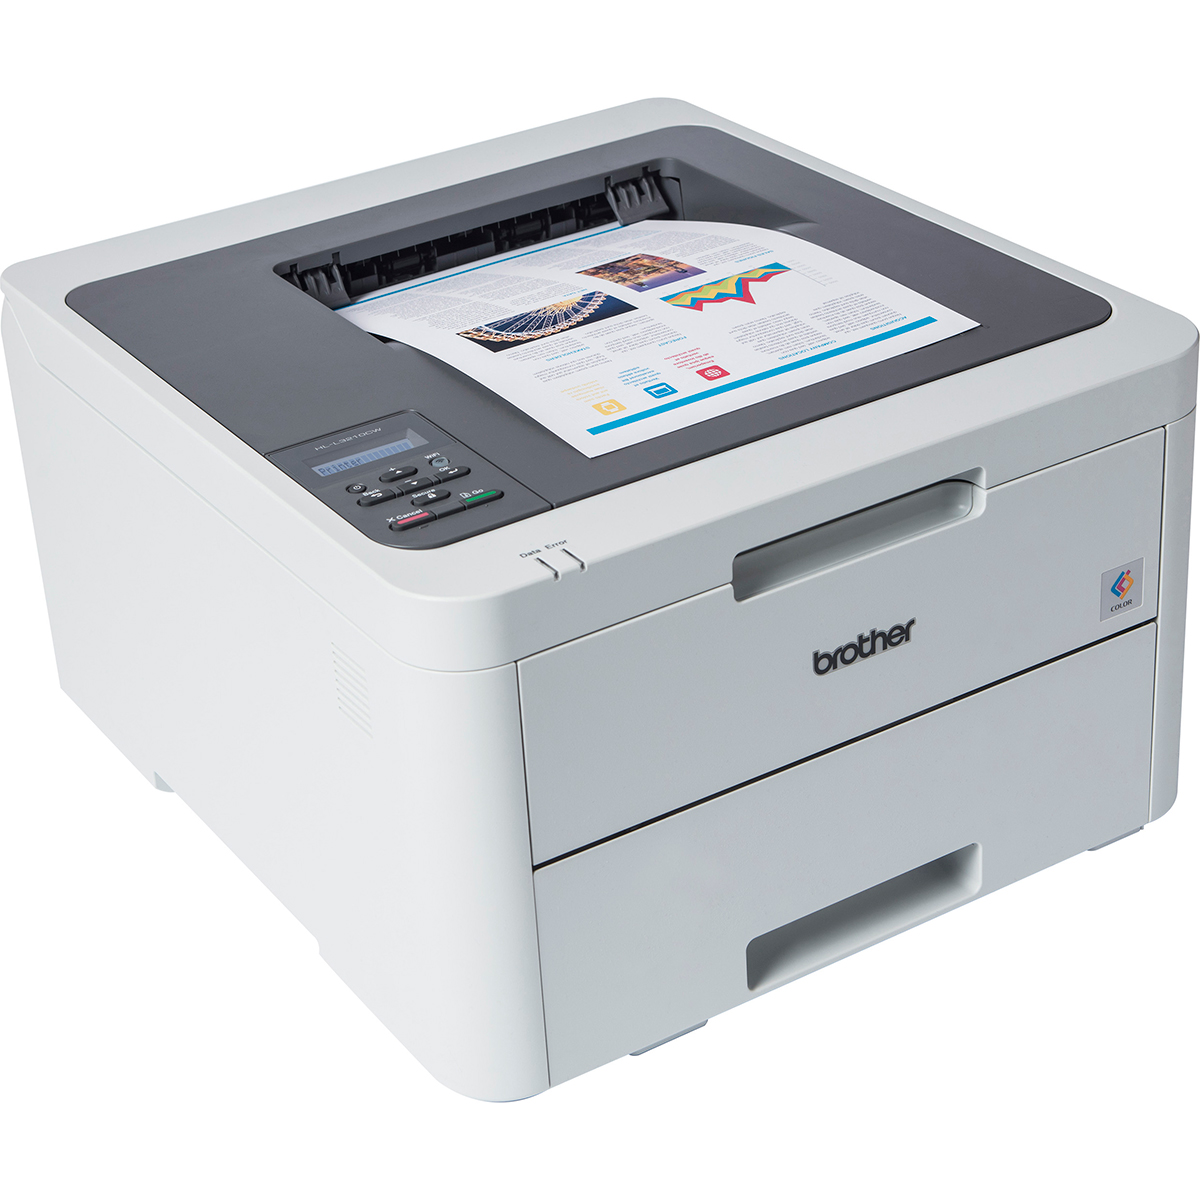 Brother HL-L3210CW Colour LED Laser Printer